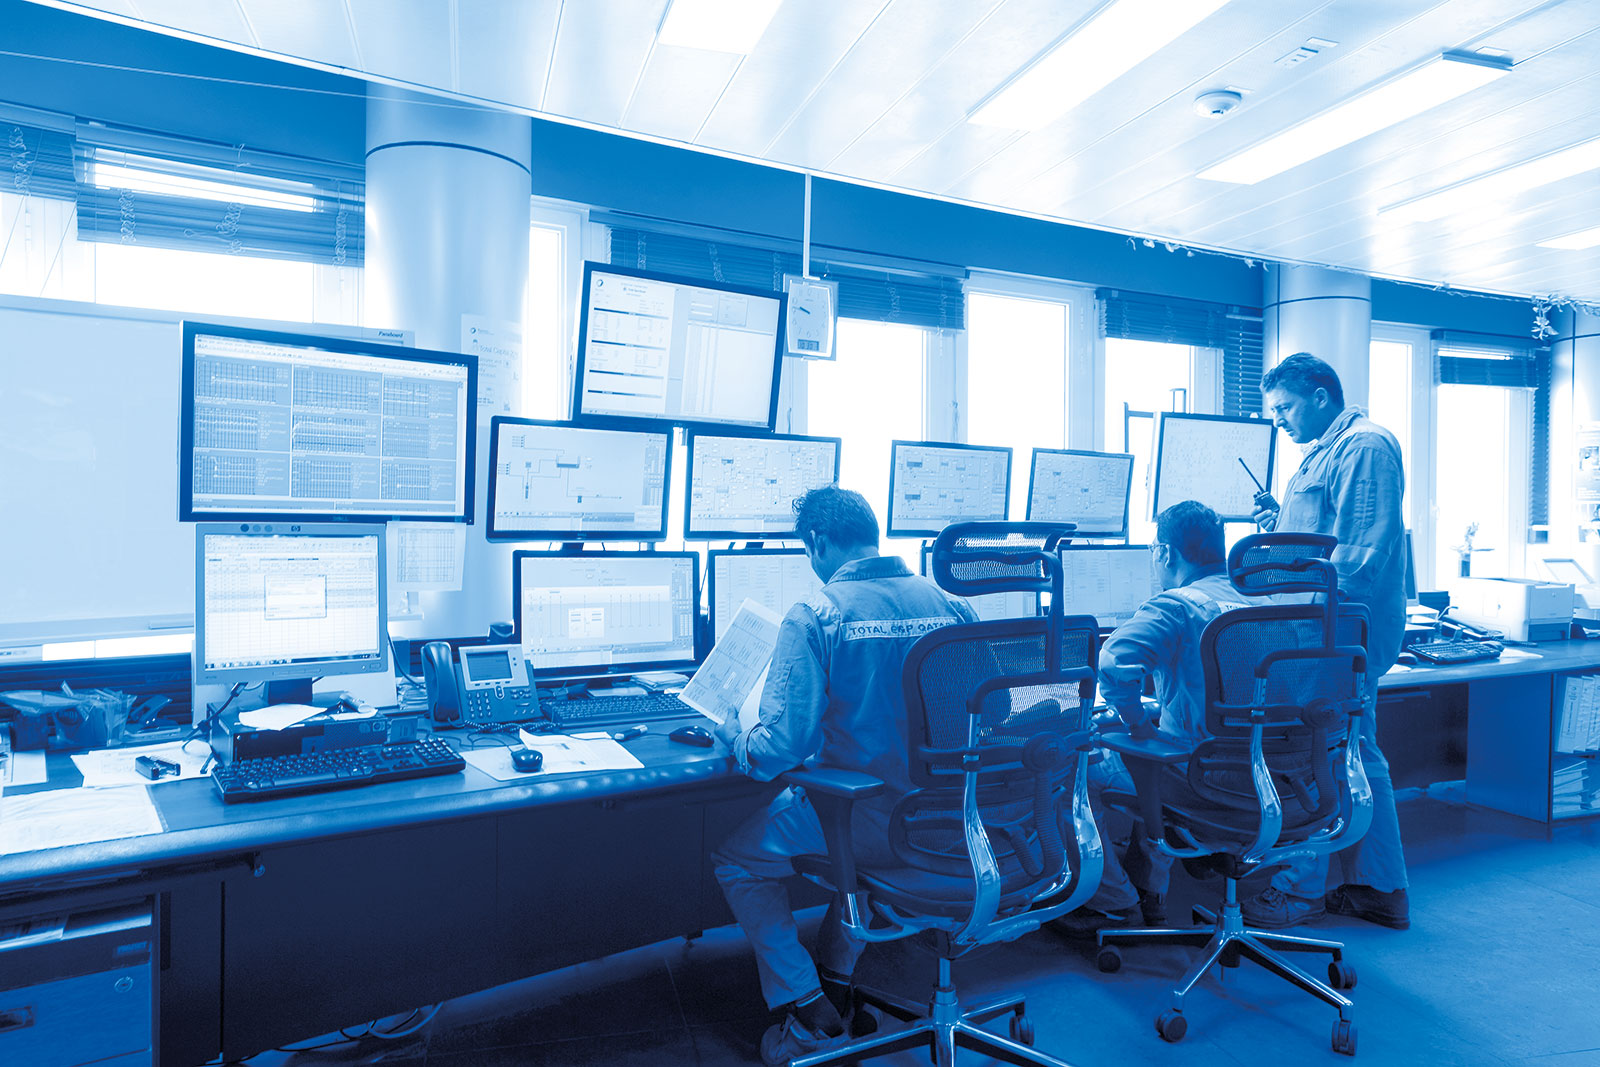 Operators in a control room Al-Khalij oil terminal in Qatar.